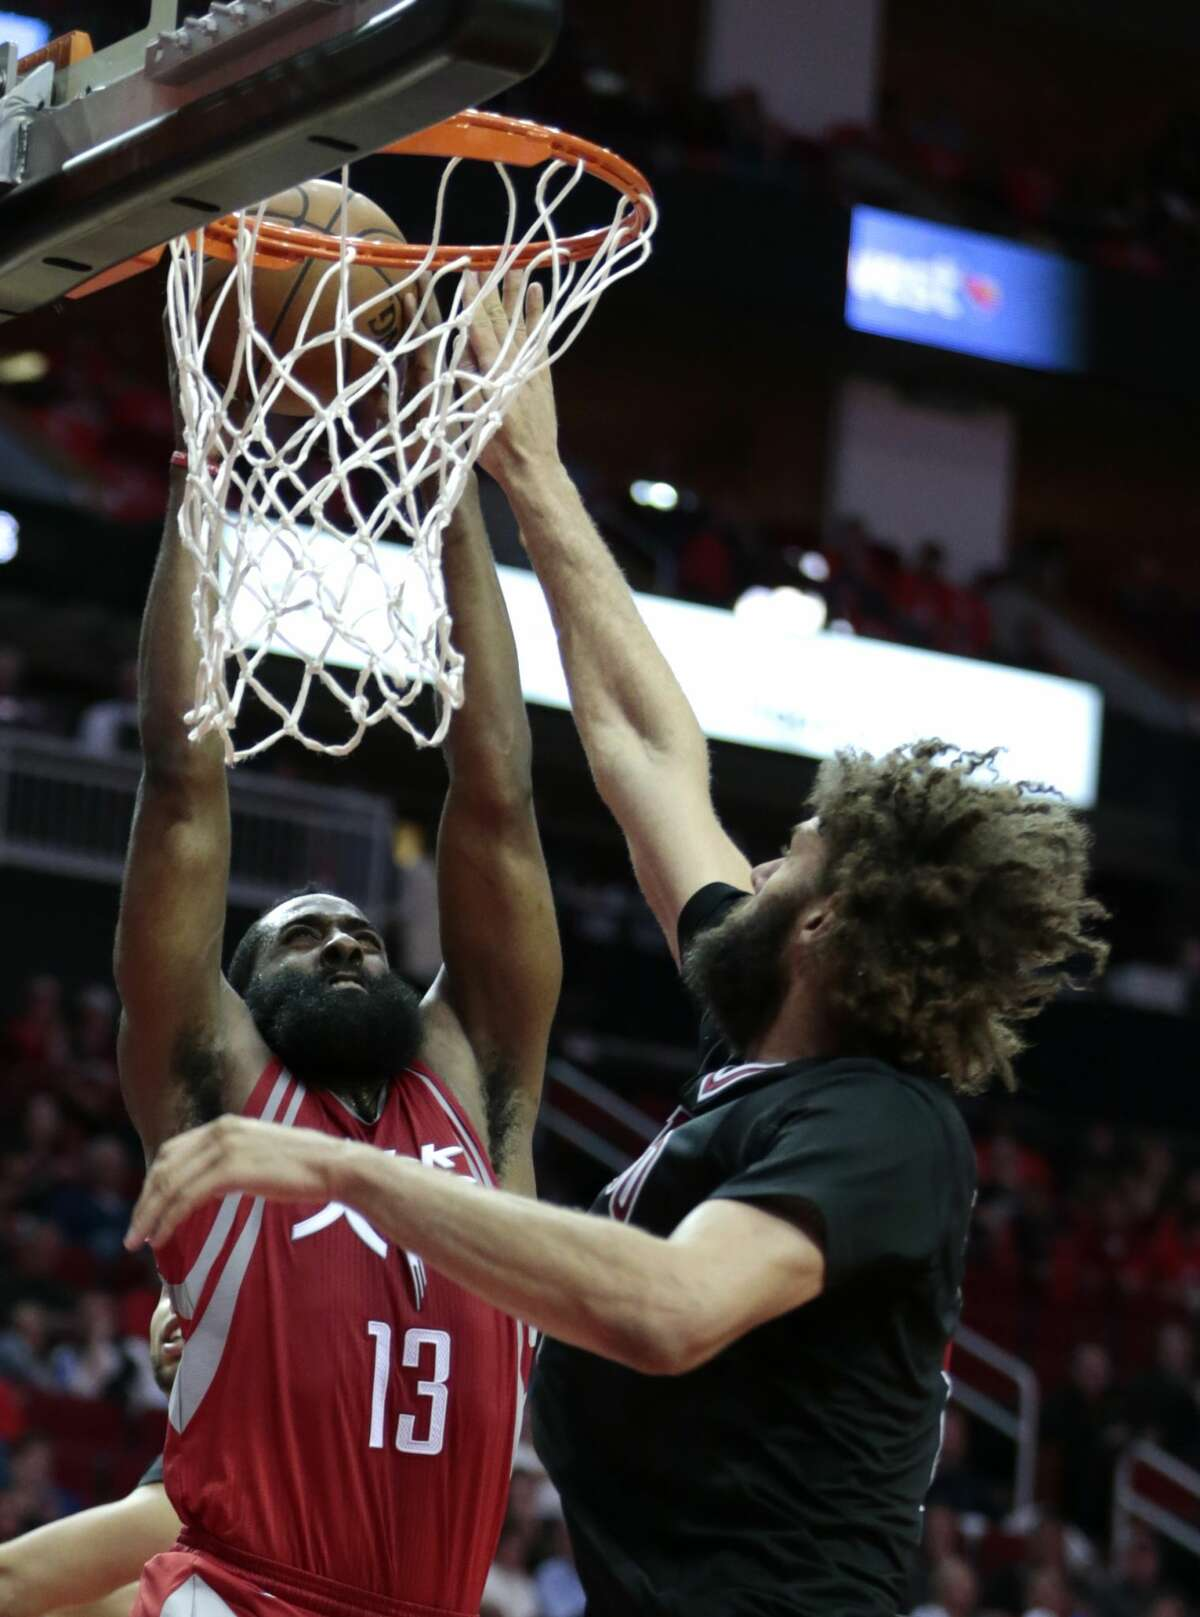 Houston Rockets guard James Harden (13) goes up for a dunk against Chicago Bulls center Robin Lopez (8) during the fourth quarter of an NBA basketball game at Toyota Center on Friday, Feb. 3, 2017, in Houston. ( Brett Coomer / Houston Chronicle )